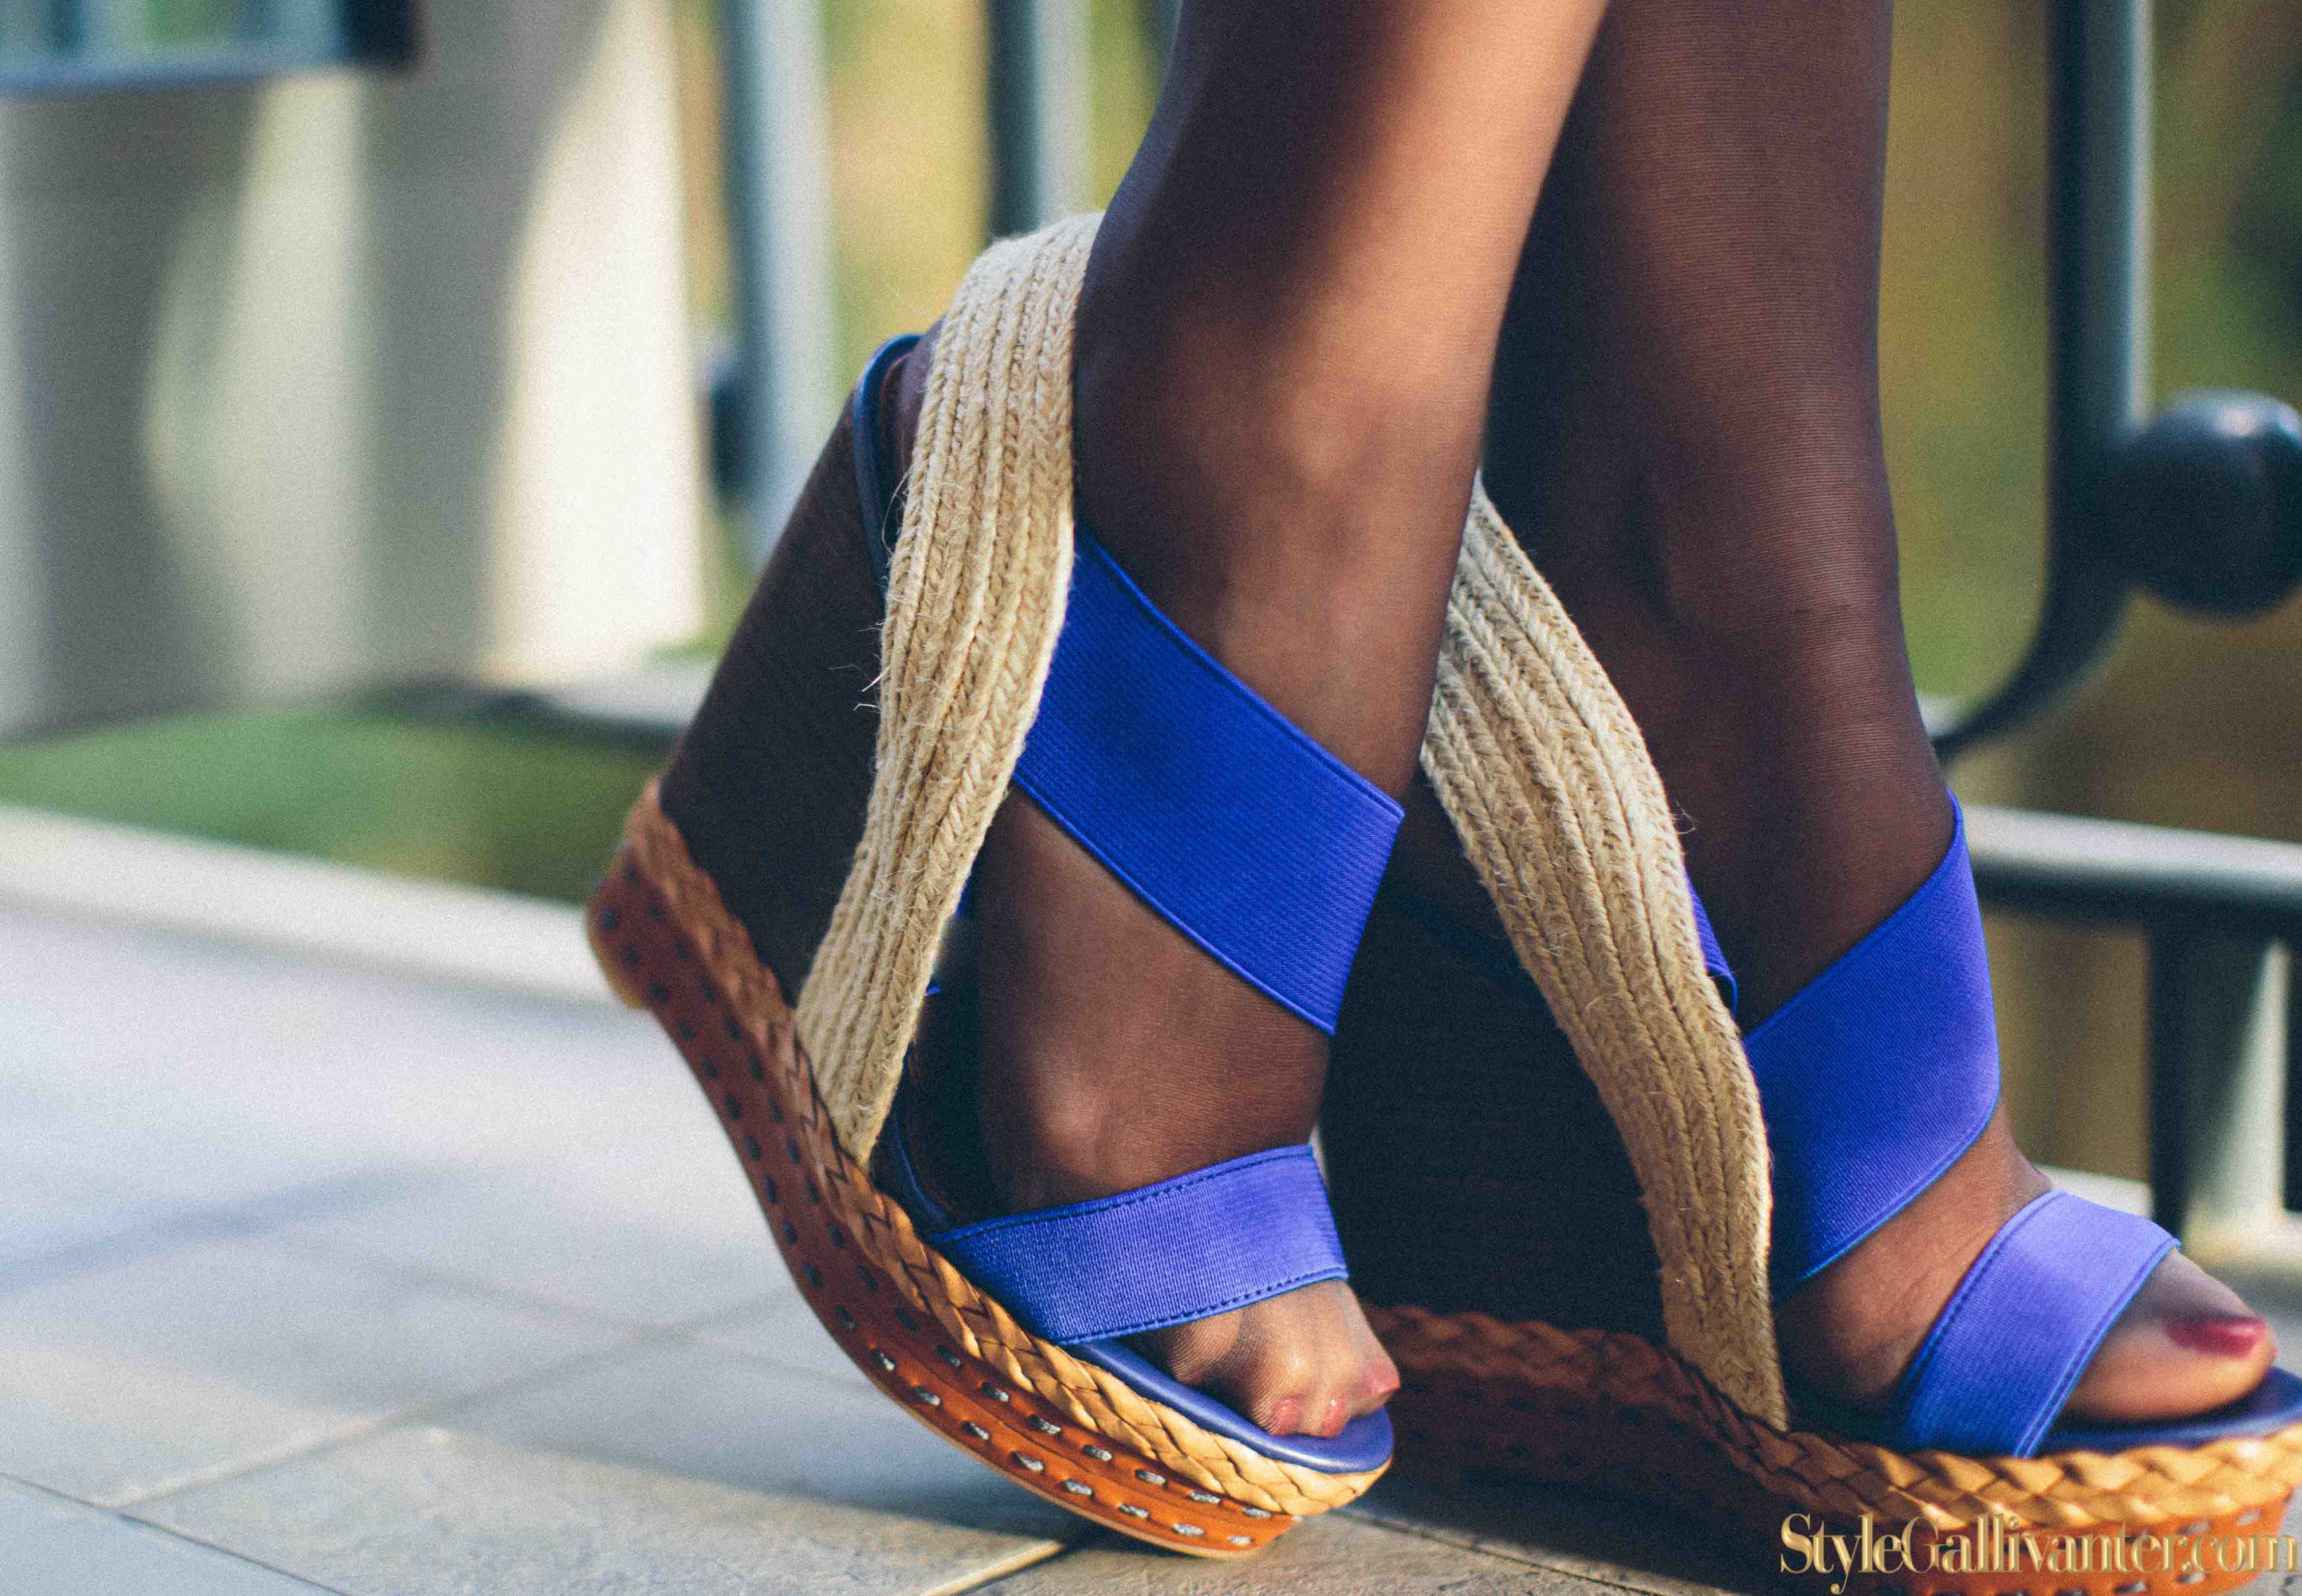 NEW-WEDGE-TRENDS-2014_best-vintage-bloggers-2014_high-fashion-bloggers-melbourne_turban-trends-2014_melbourne-fashion-blogs-2014_africas-best-fashion-bloggers_all-grey-monotone-3